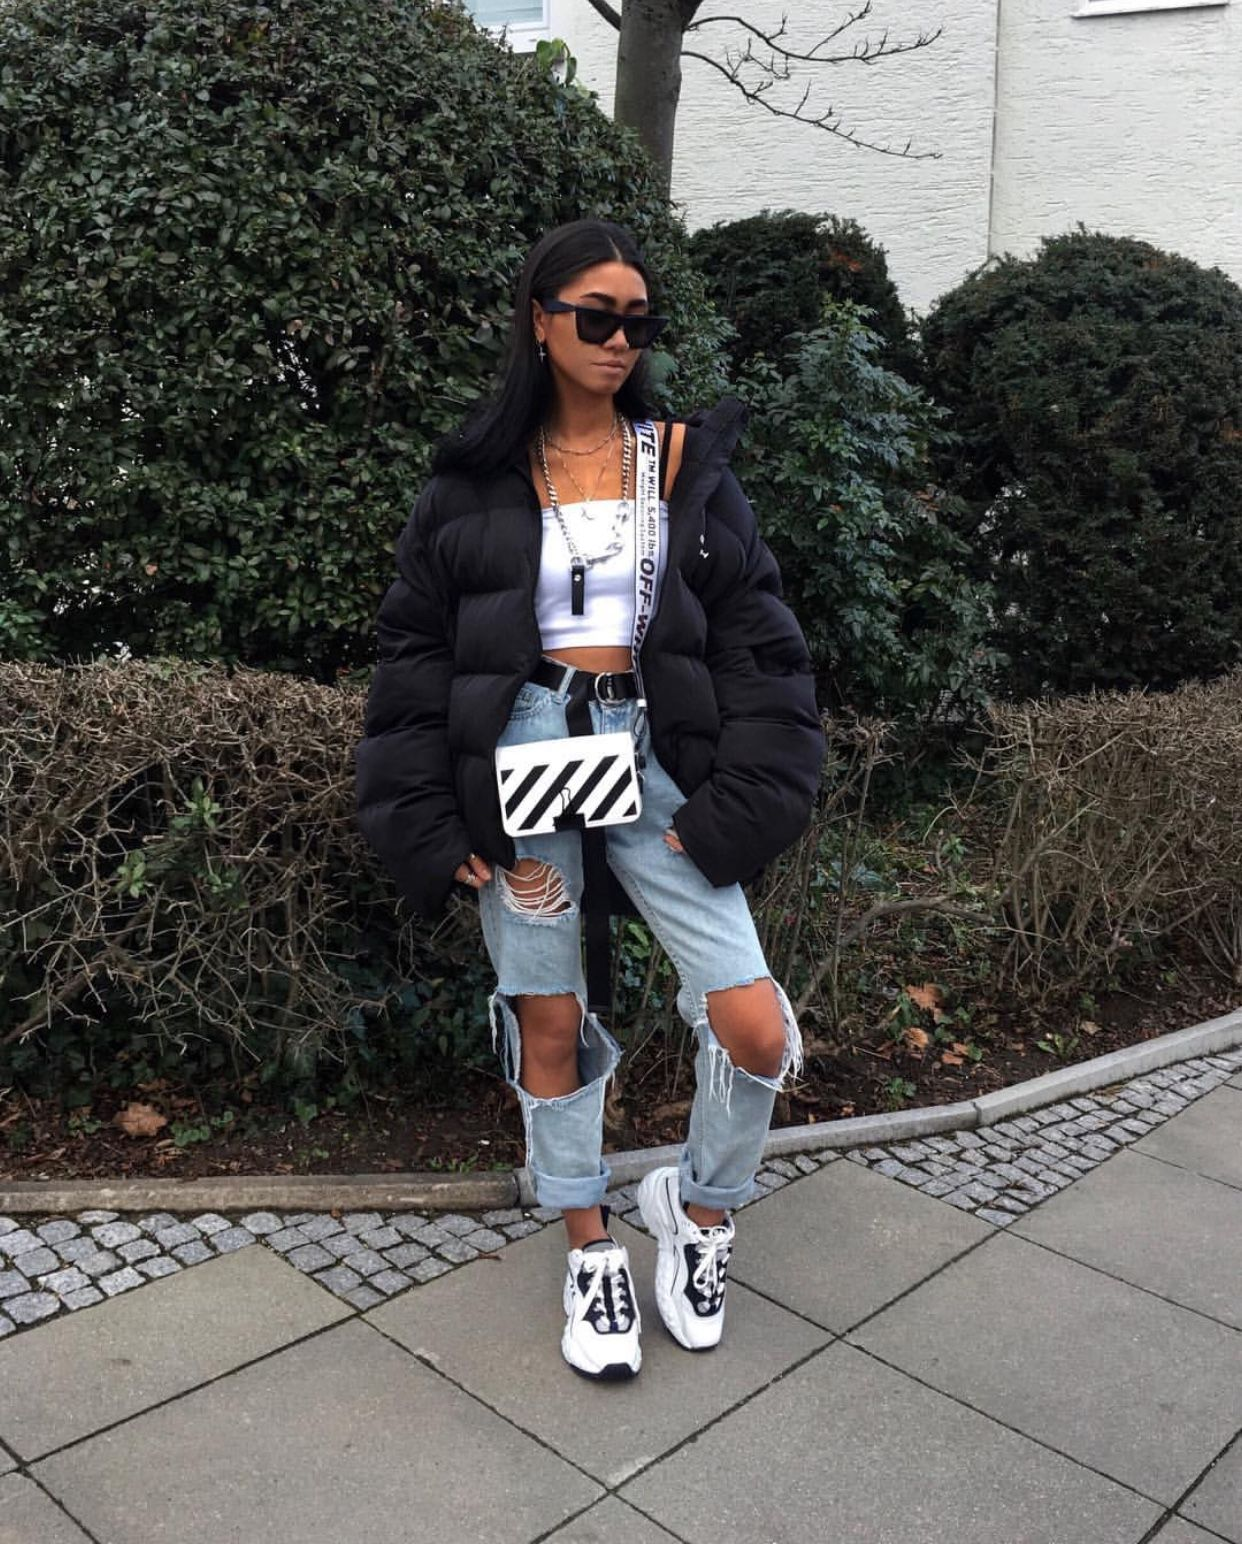 Pin by Goldenbabe on Fleeky  Fashion inspo outfits, Hypebeast